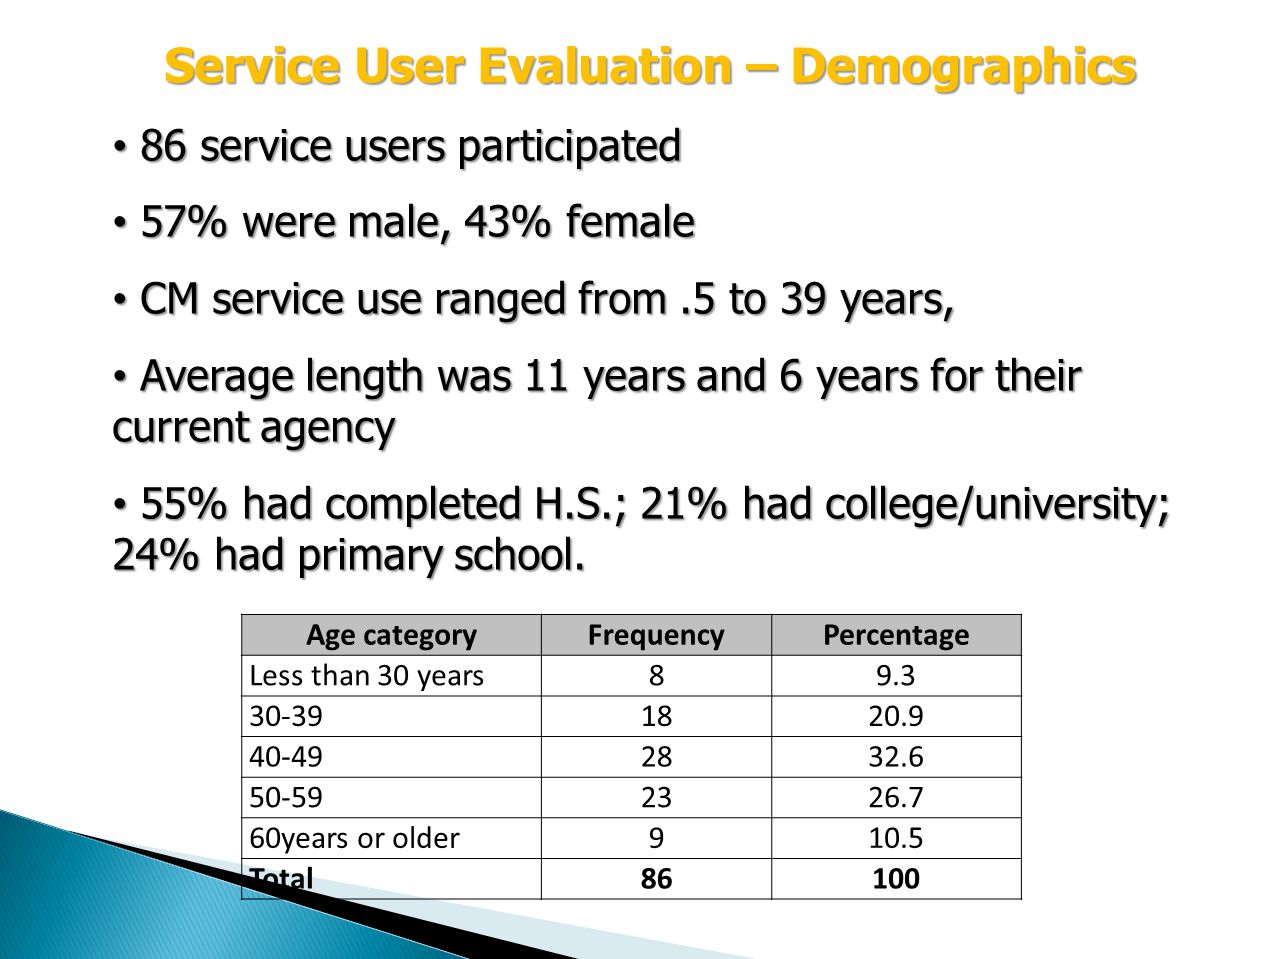 Service User Evaluation – Demographics 86 service users participated 86 service users participated 57% were male, 43% female 57% were male, 43% female CM service use ranged from.5 to 39 years, CM service use ranged from.5 to 39 years, Average length was 11 years and 6 years for their current agency Average length was 11 years and 6 years for their current agency 55% had completed H.S.; 21% had college/university; 24% had primary school.